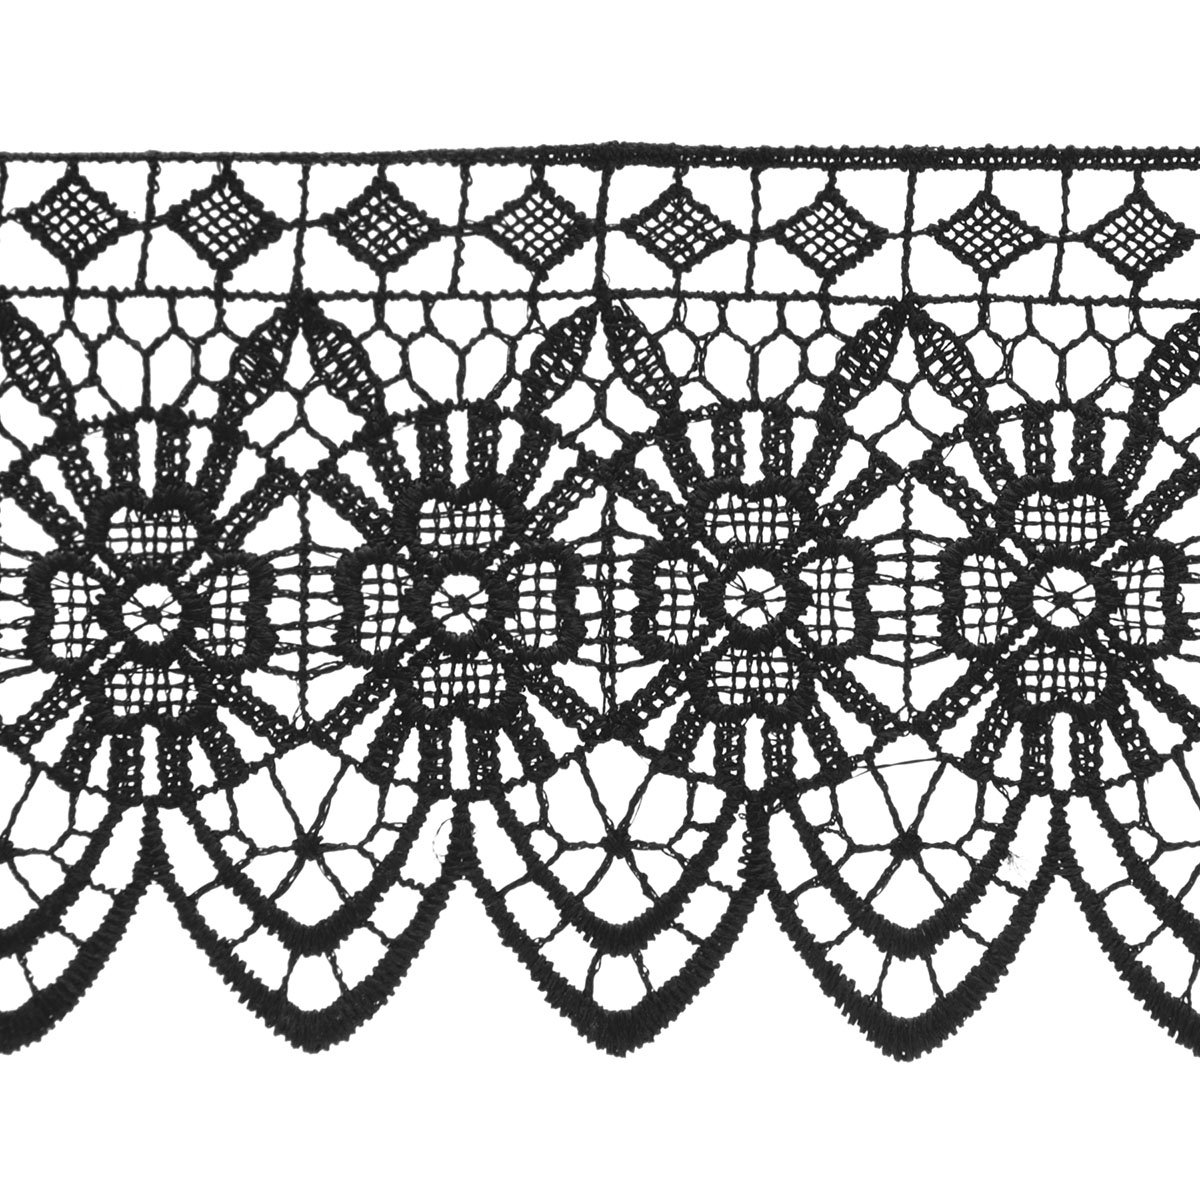 Wrights Venice Lace, 2-3/4-Inch by 15-Yard, Black светильник потолочный book the wright led